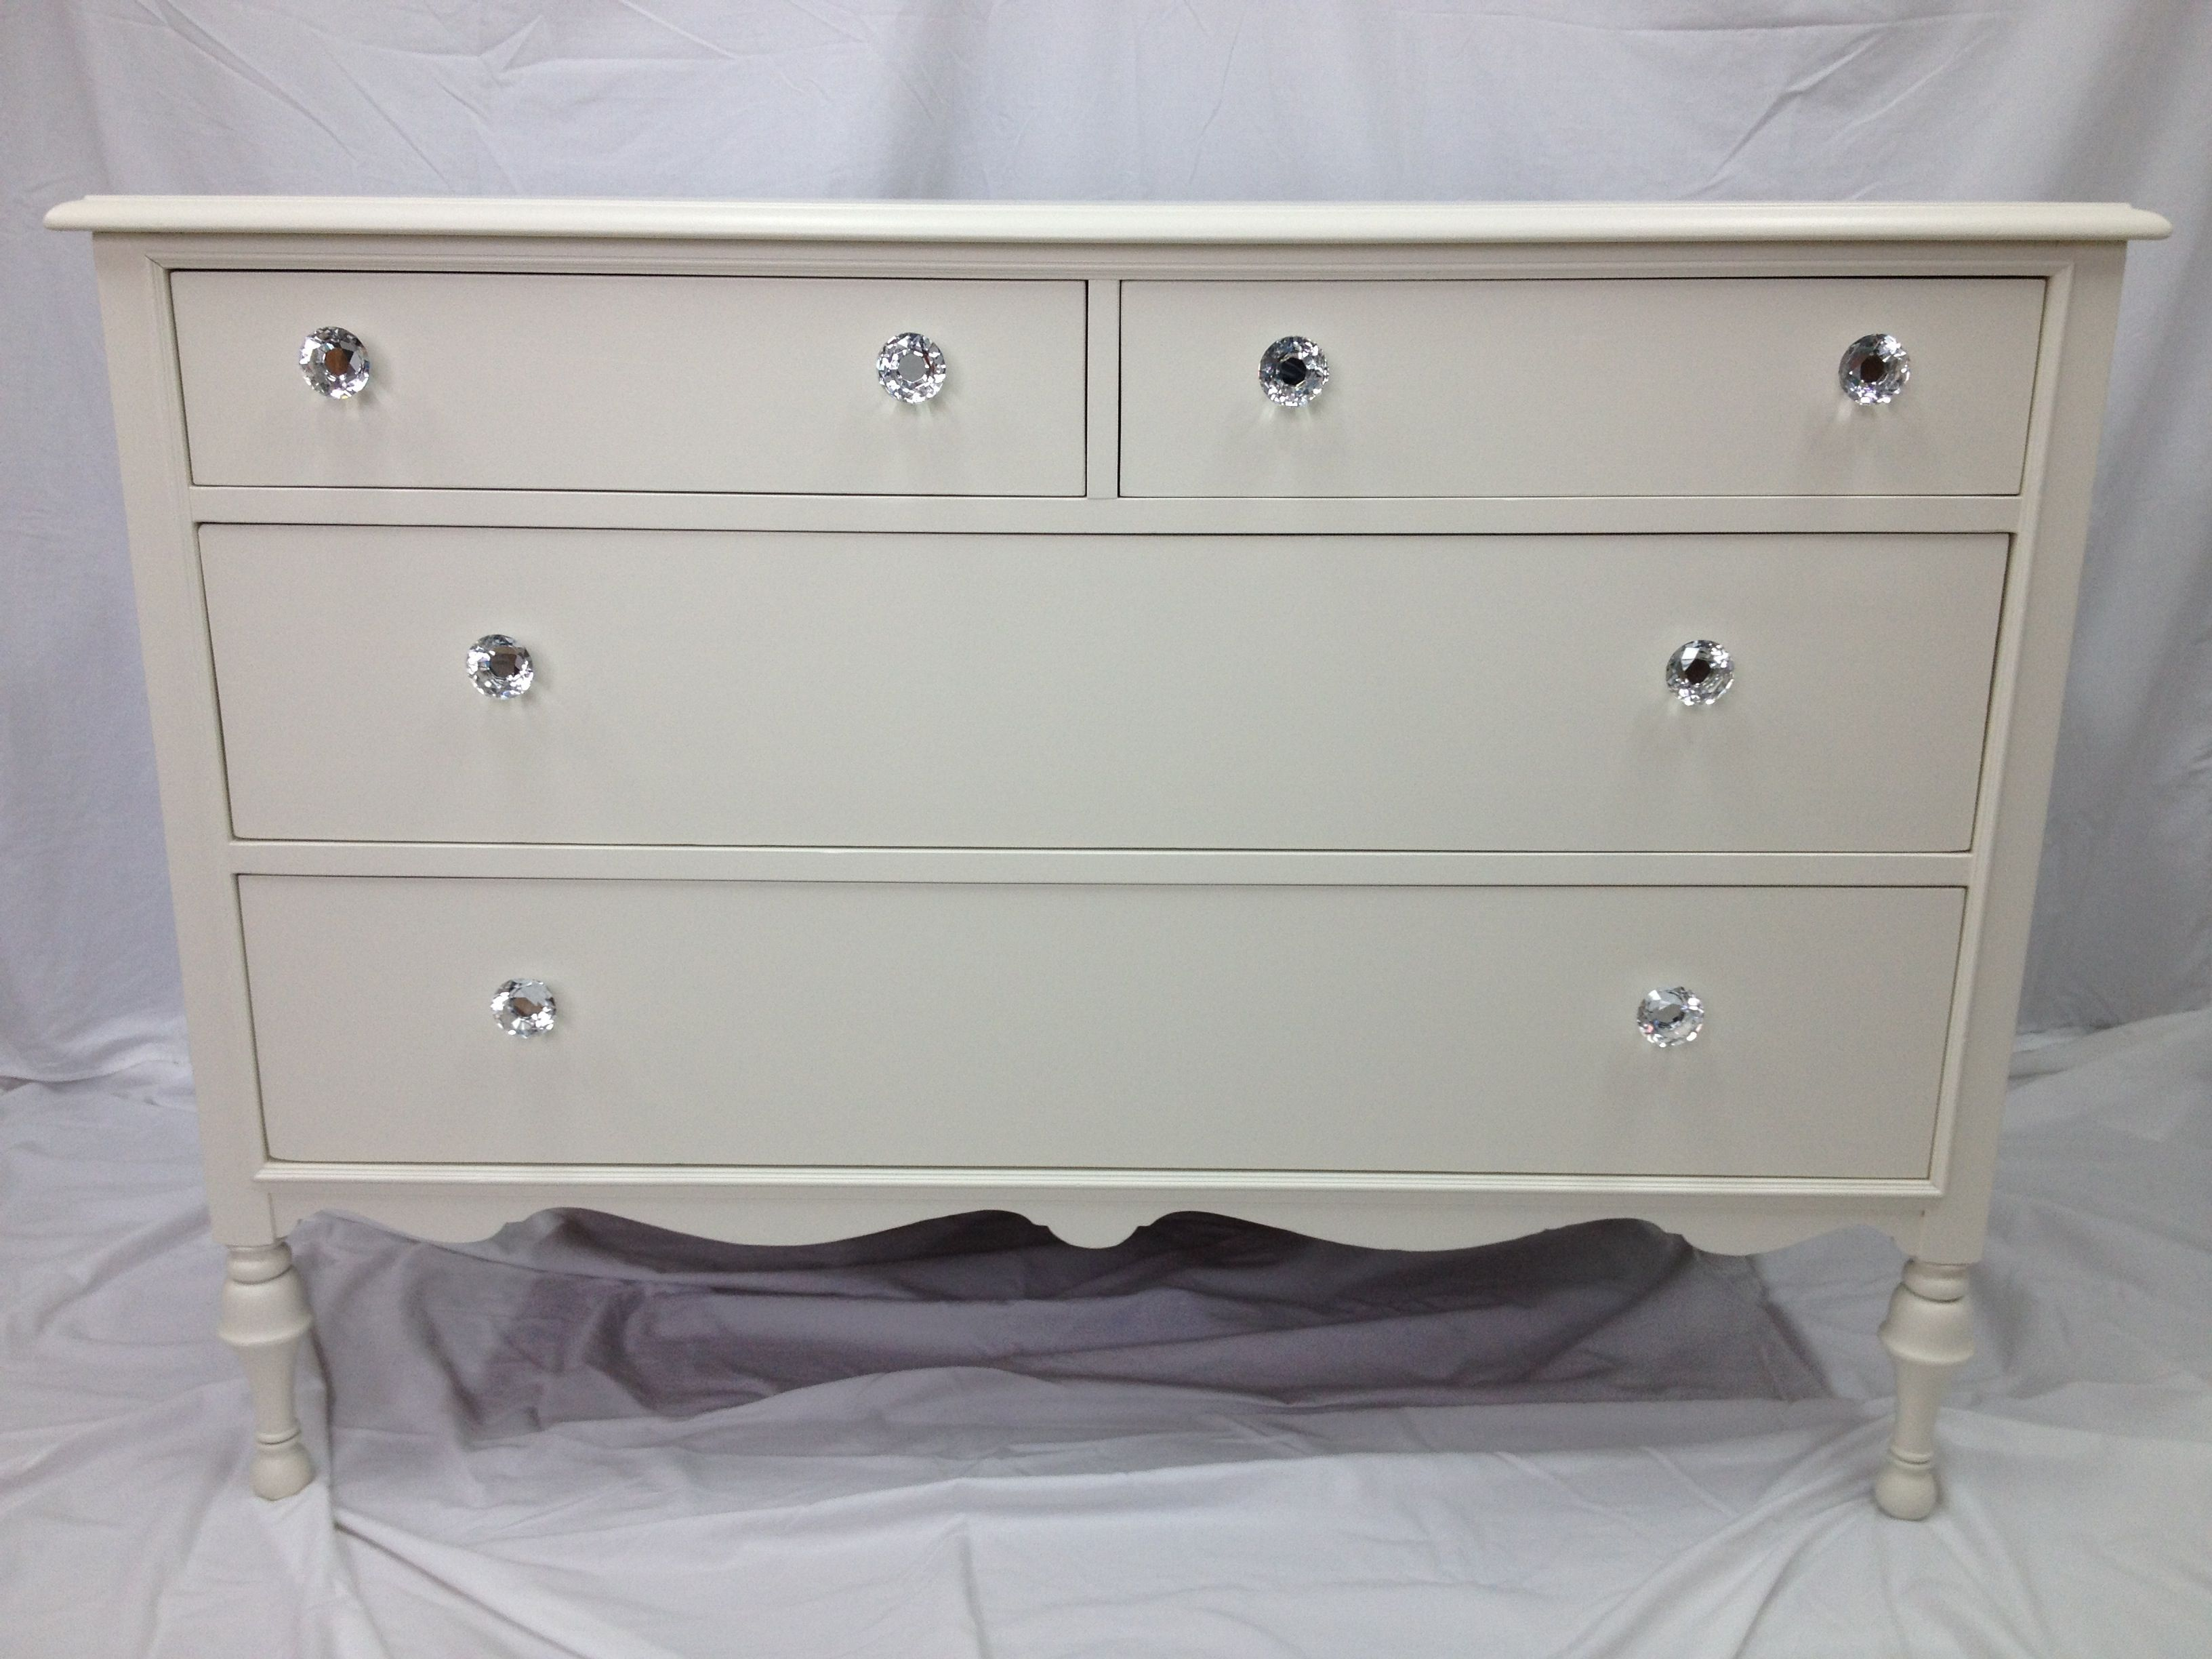 Pin By Darla Perreault On All Things New Painted Furniture